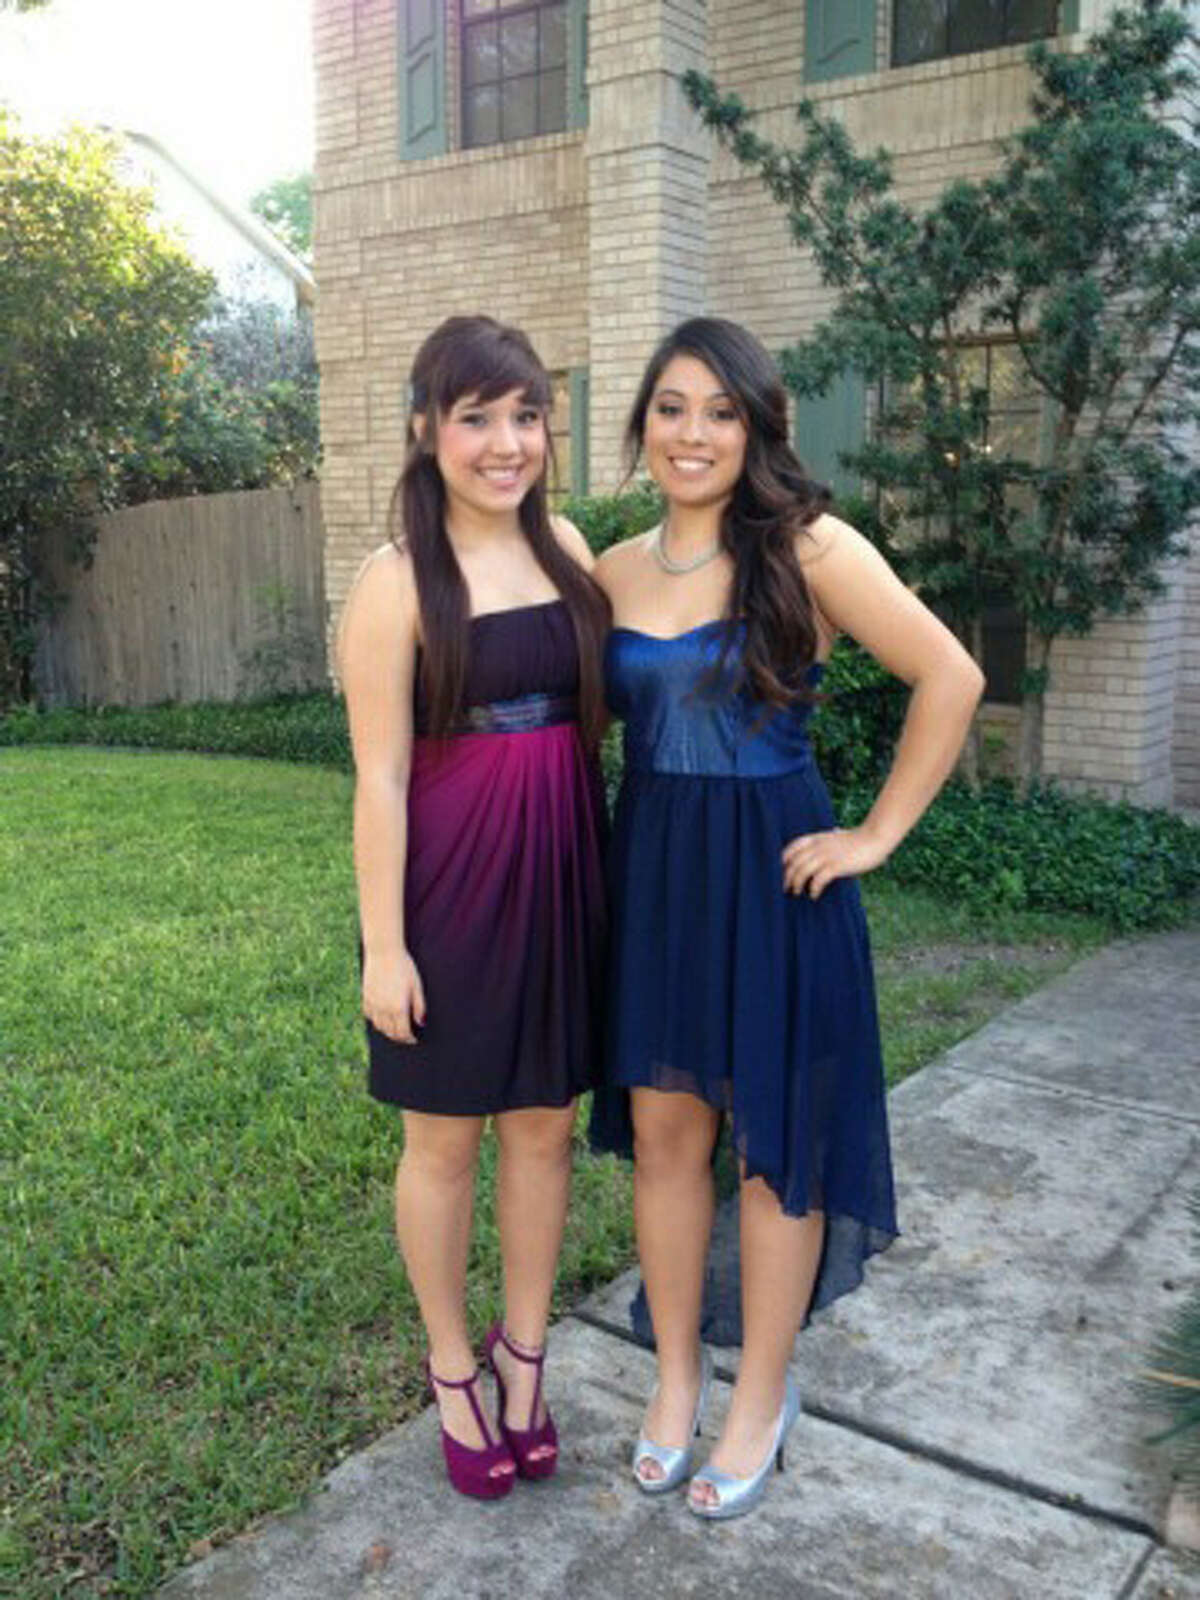 Katherine Cavazos, left, and Gabriella Lerma, dressed for the Brandeis High School homecoming dance. Lerma was involved in a fatal car accident while she was on her lunch break from Brandeis.